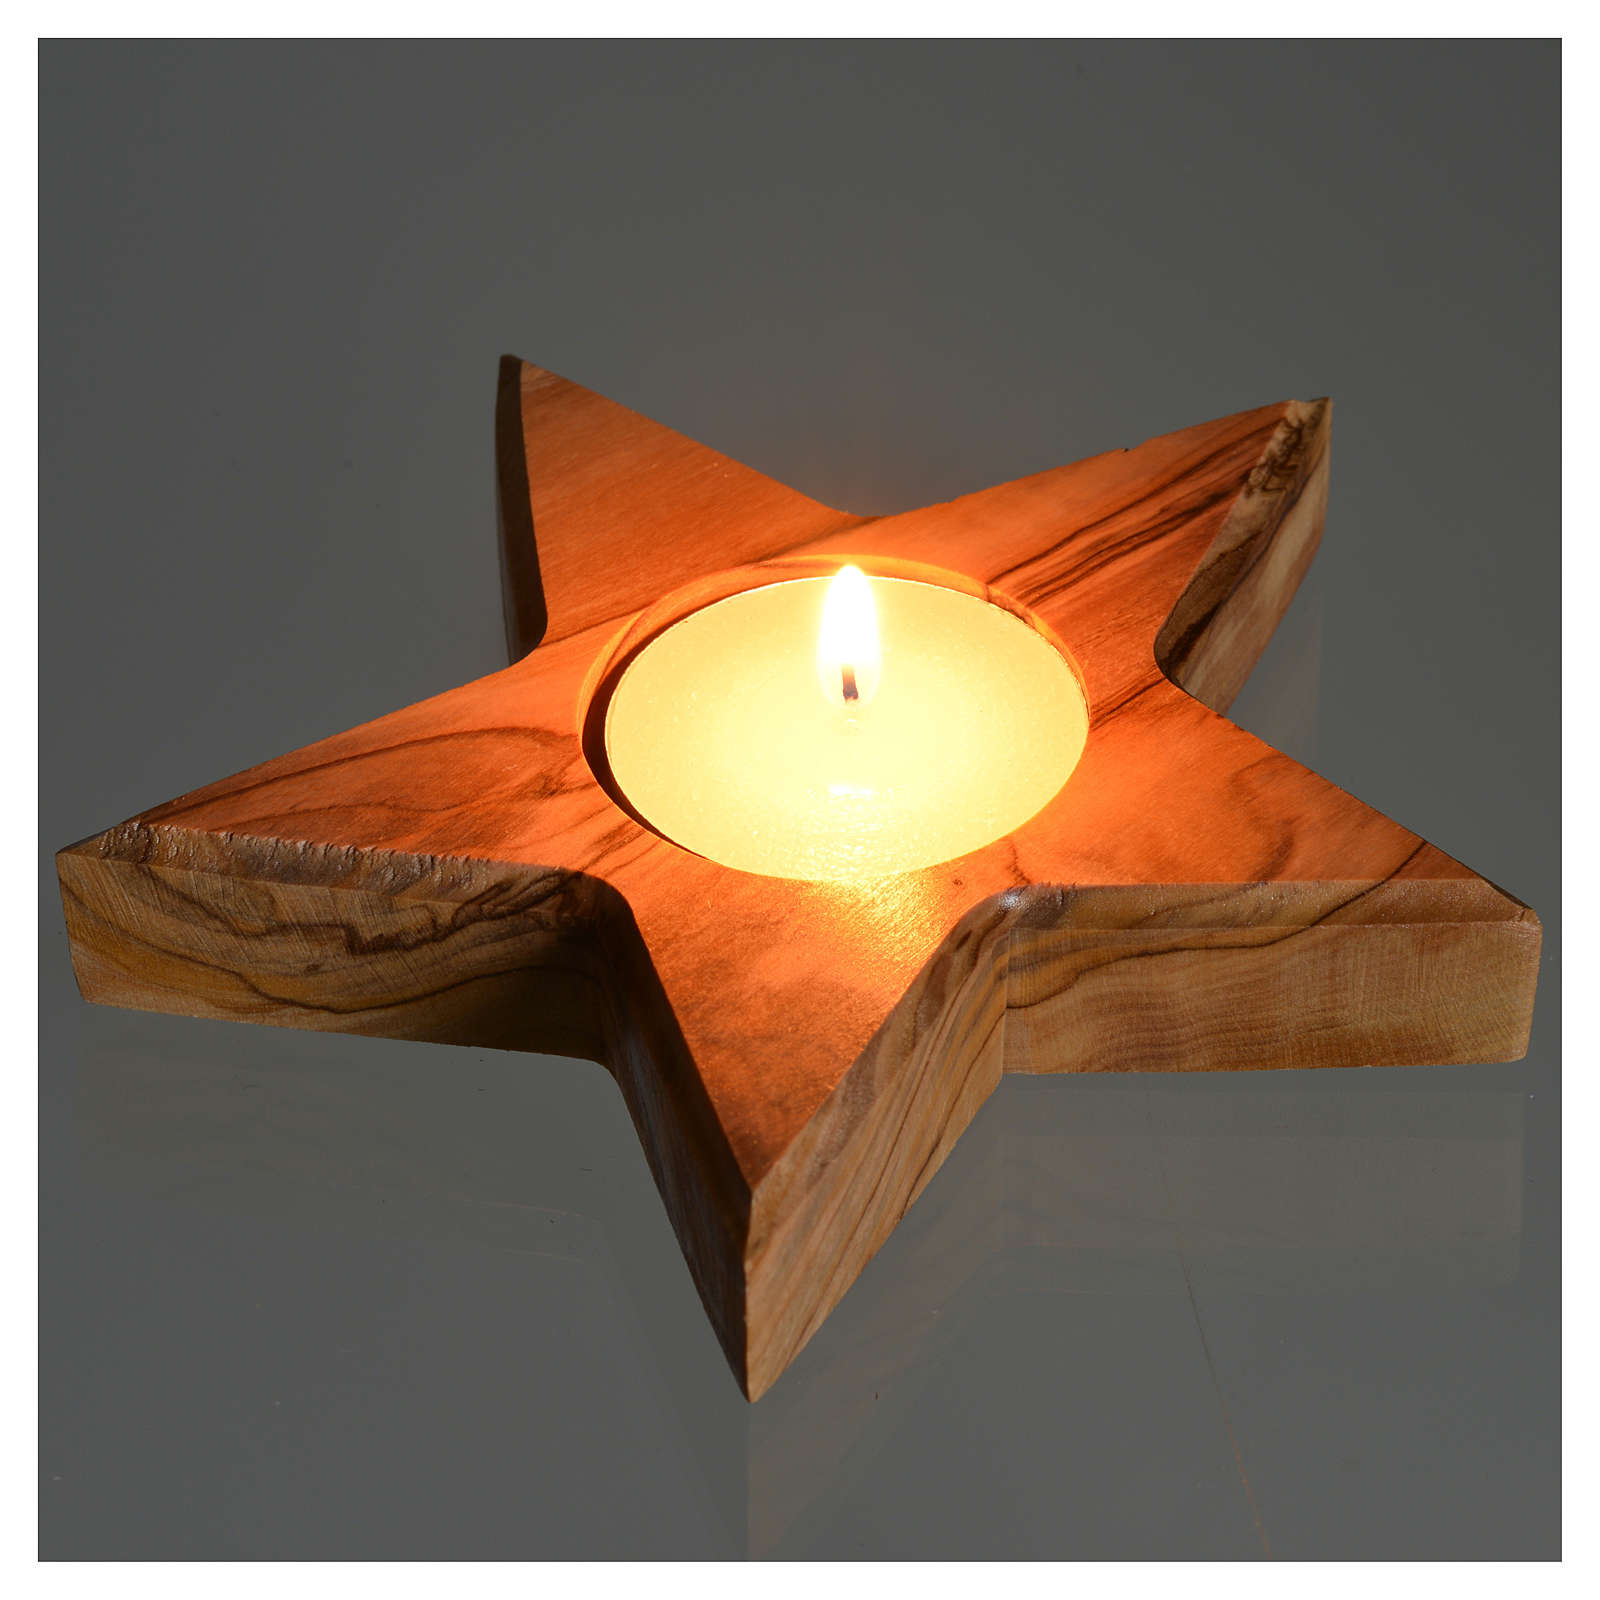 Olive wood candle-holder star 3